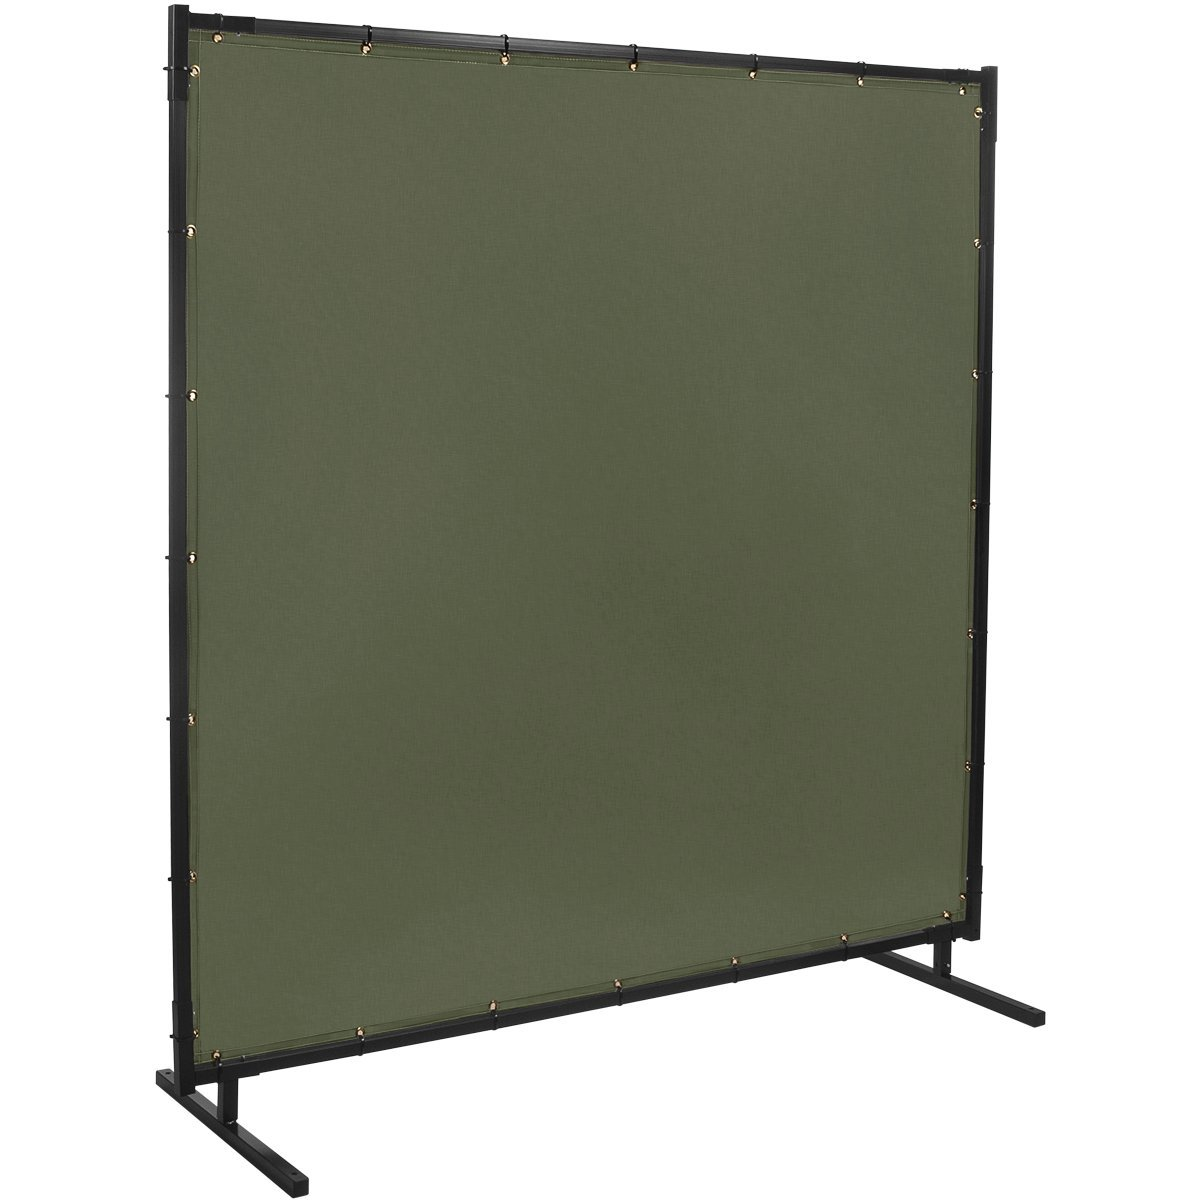 Steiner 501HD-4X5 Protect-O-Screen HD Welding Screen with Flame Retardant 12-Ounce Canvas Curtain, Duck Olive Green, 4' x 5'